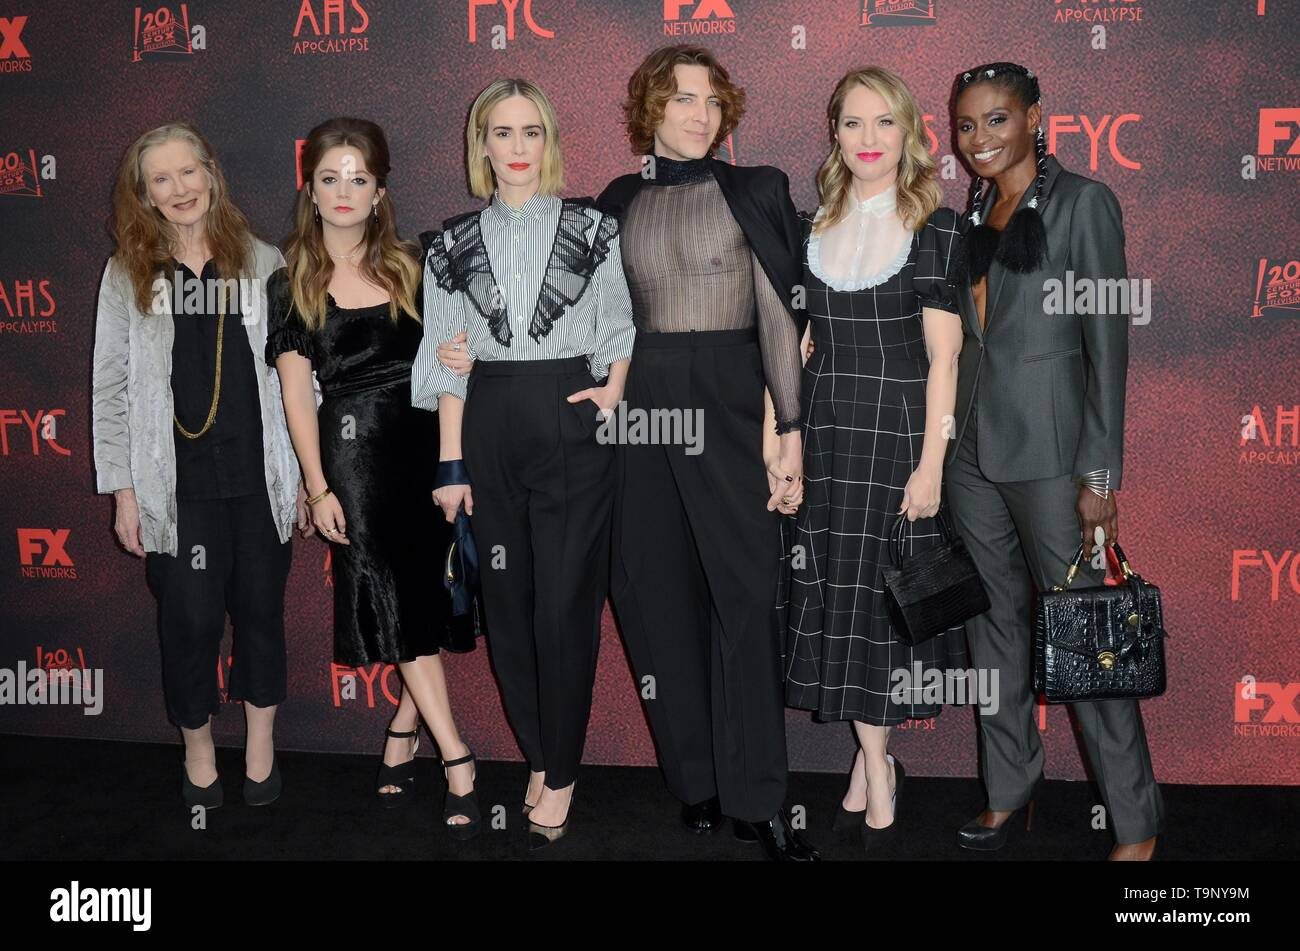 Los Angeles, CA, USA. 18th May, 2019. Frances Conroy, Billie Lourd, Sarah Paulson, Cody Fern, Leslie Grossman, Adina Porter at arrivals for AMERICAN HORROR STORY: APOCALYPSE FYC Event, NeueHouse, Los Angeles, CA May 18, 2019. Credit: Priscilla Grant/Everett Collection/Alamy Live News - Stock Image